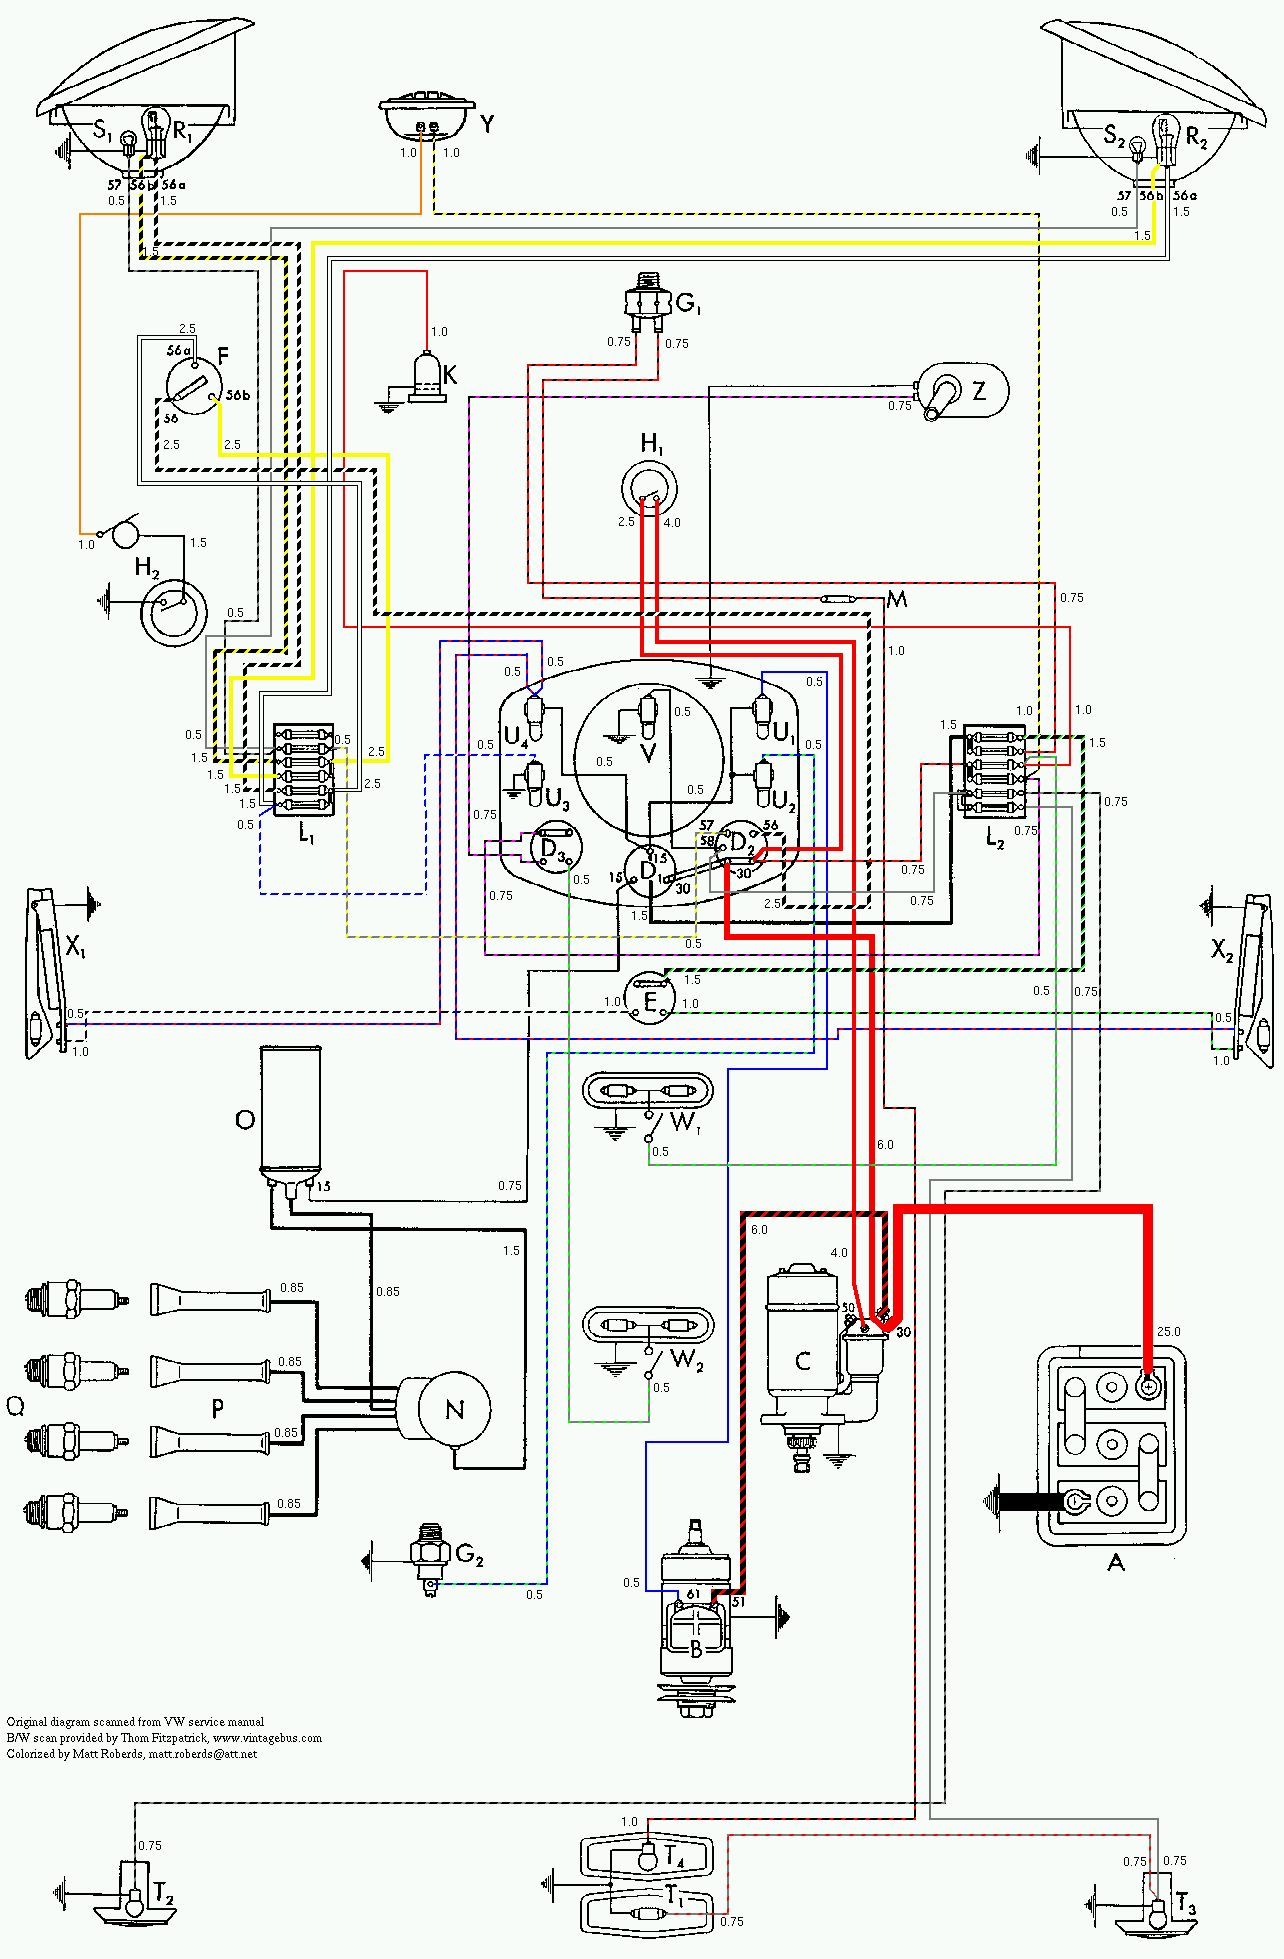 1975 Camaro Alternator Wiring Diagram Archive Of Automotive 1966 Nova Vw Transporter Bus Auto Electrical Rh Stanford Edu Uk Co Gov Sanjaydutt